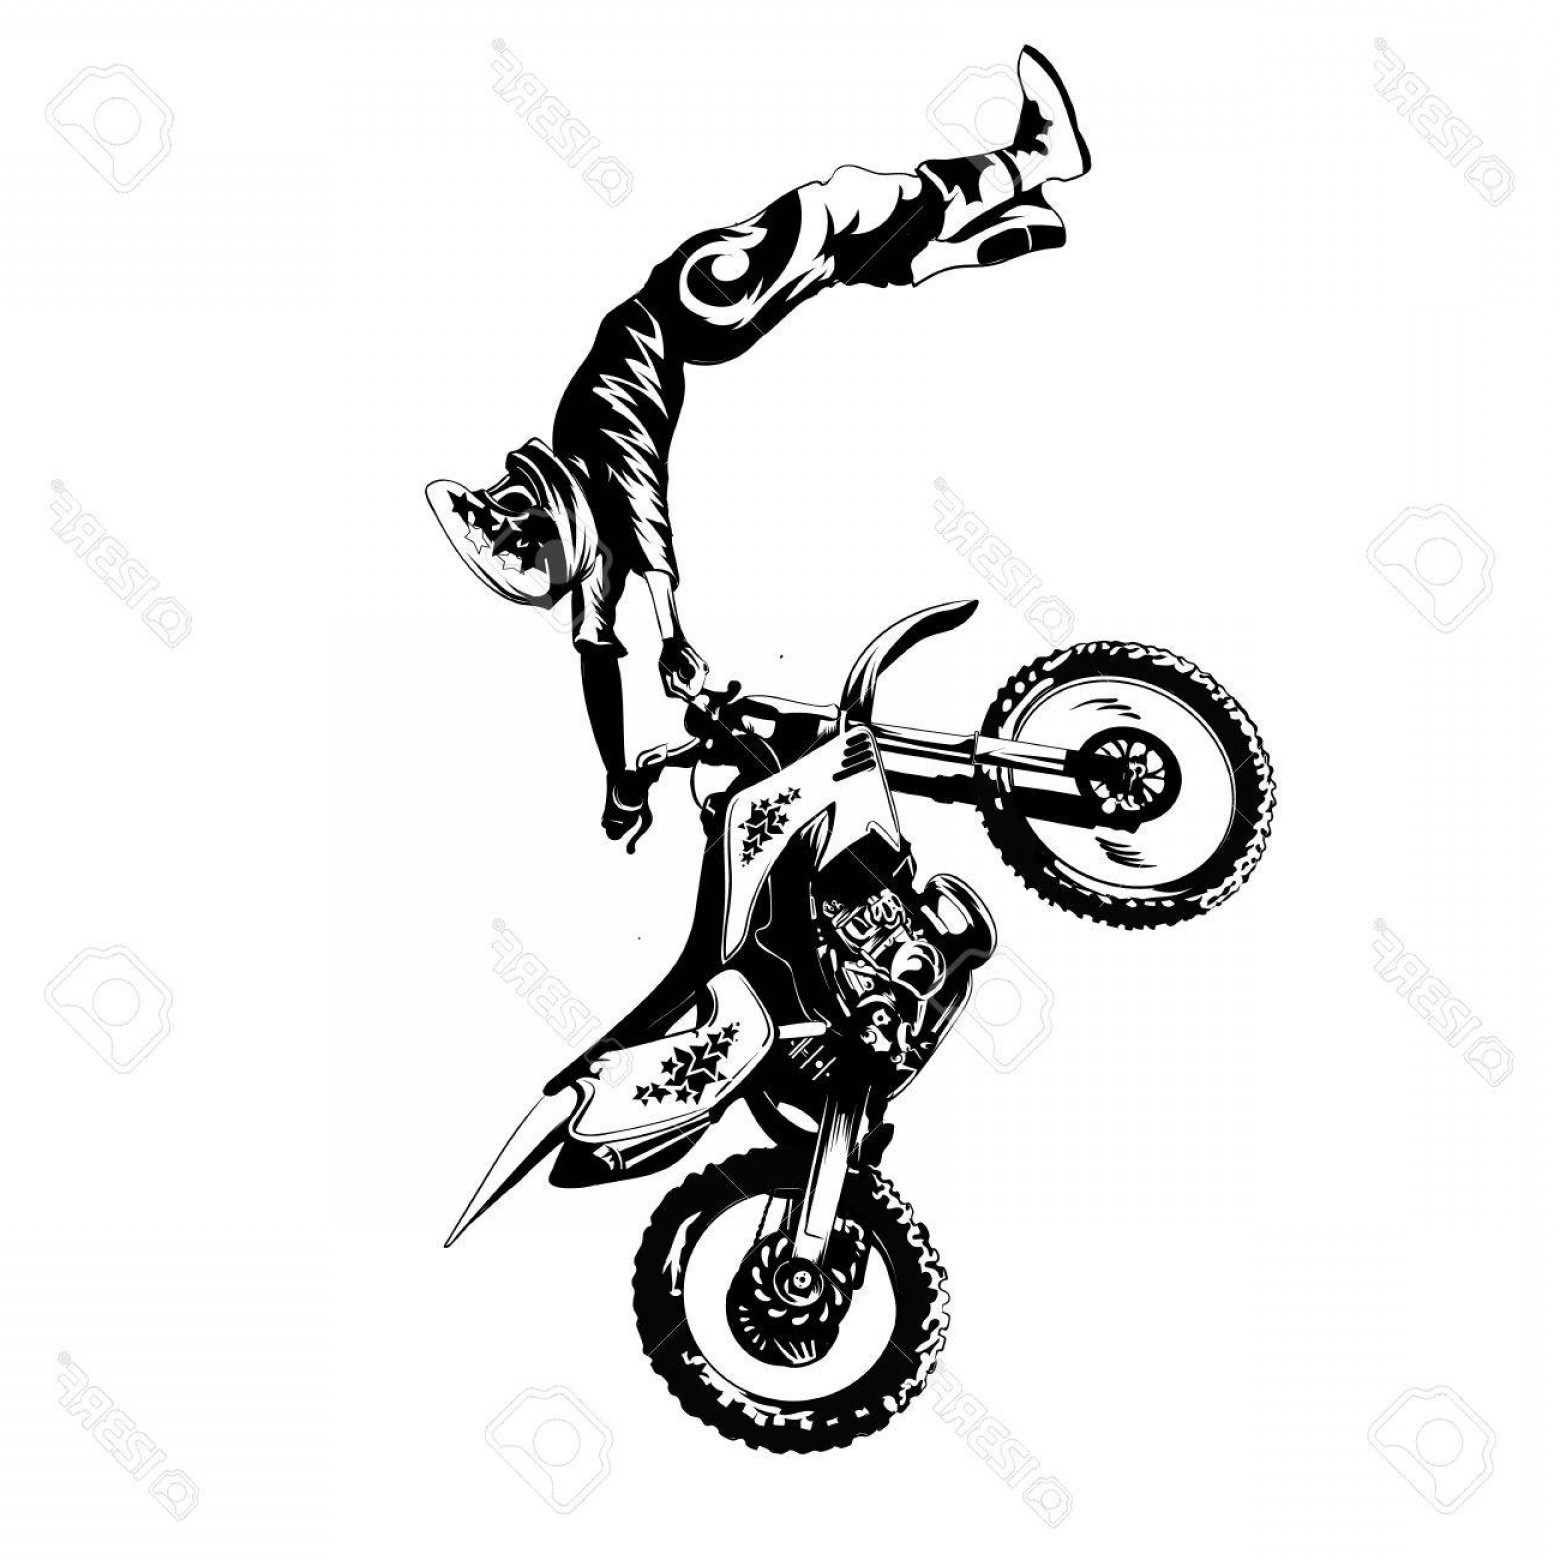 Dirt Bike Gas Can Vector: Photostock Vector Fmx Trick Rider On A White Background Isolated Eps